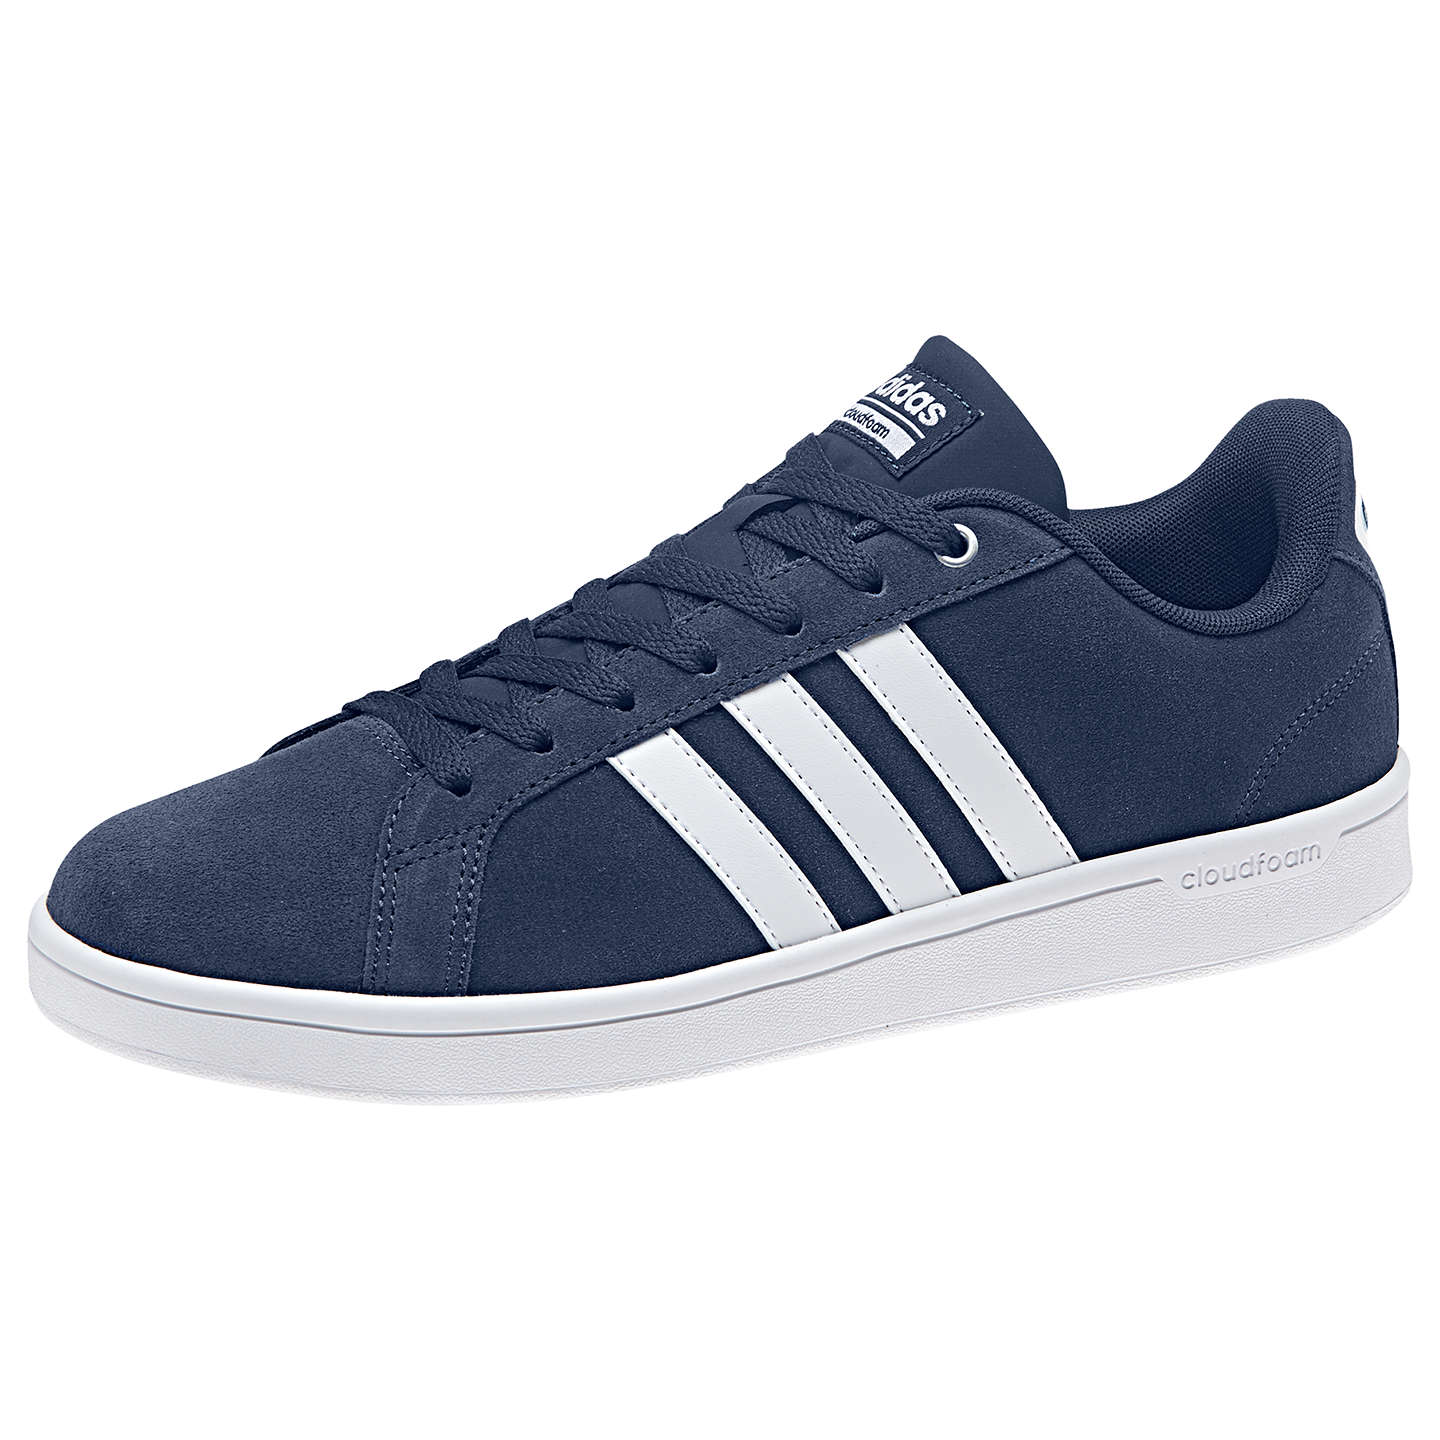 adidas neo cloudfoam advantage men's trainer blue